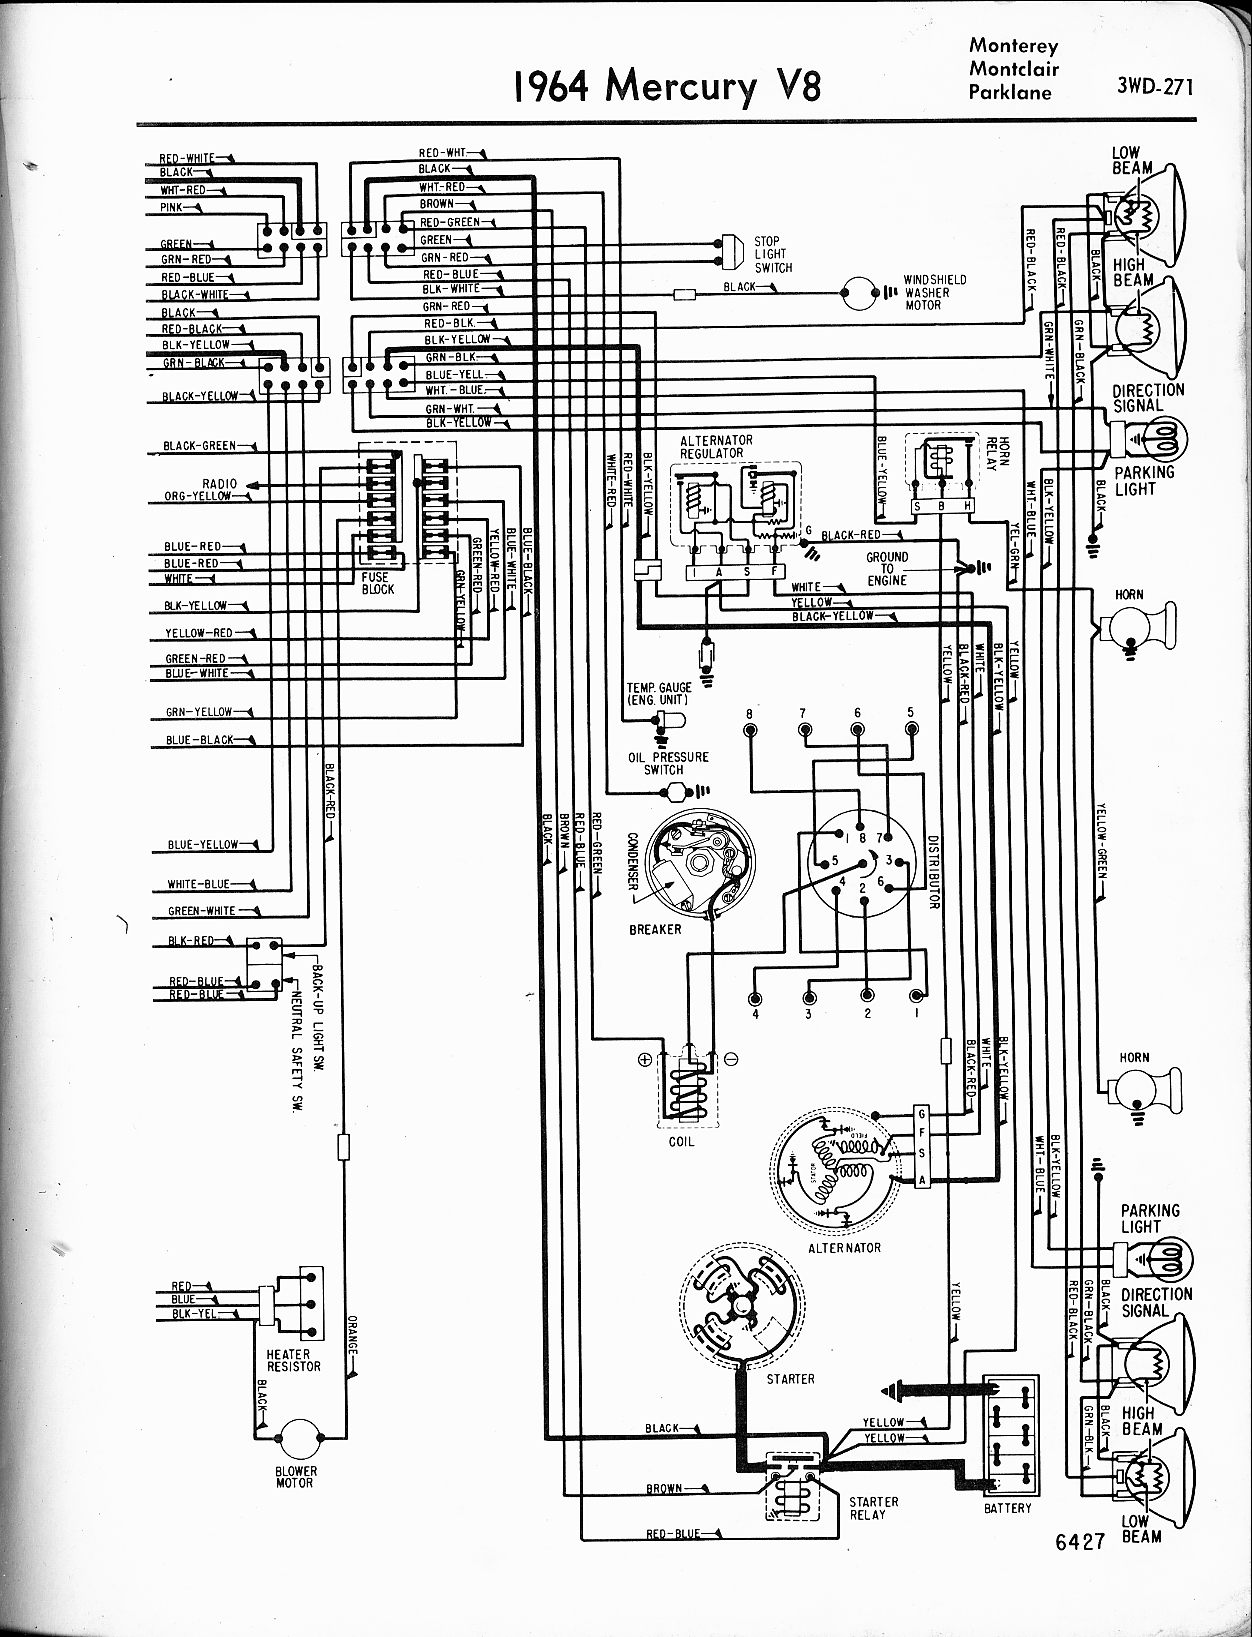 [SCHEMATICS_4PO]  1956 Thunderbird Wiring Diagram Pdf | Wiring Diagram | 1966 Corvette Wiring Diagram Pdf |  | Wiring Diagram - AutoScout24